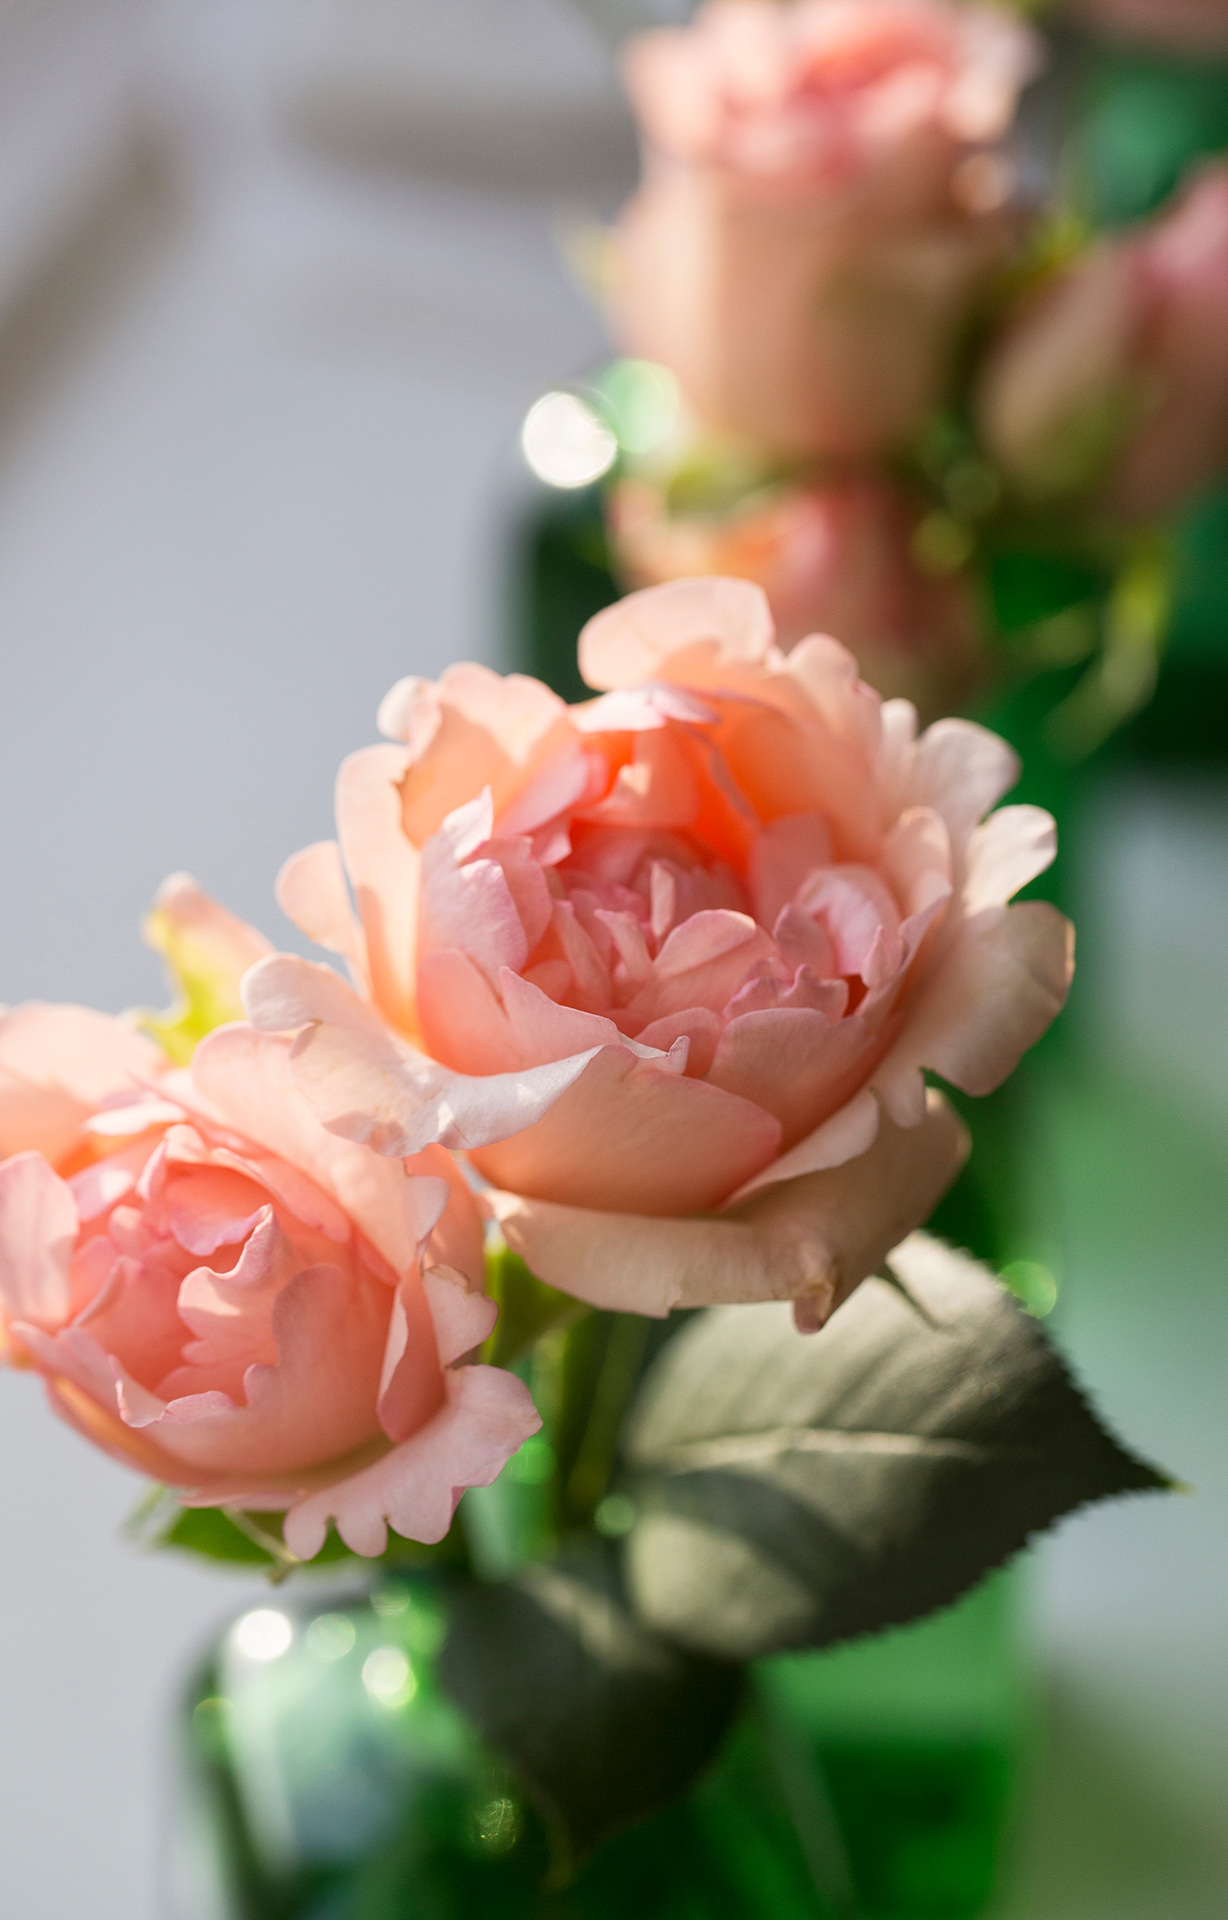 This smaller scale garden rose Sweet Perfumella, with her delicate, light fragrance resembling a candy cane is an ideal choice for mixed bouquets and floral arrangement with a peach/coral theme.